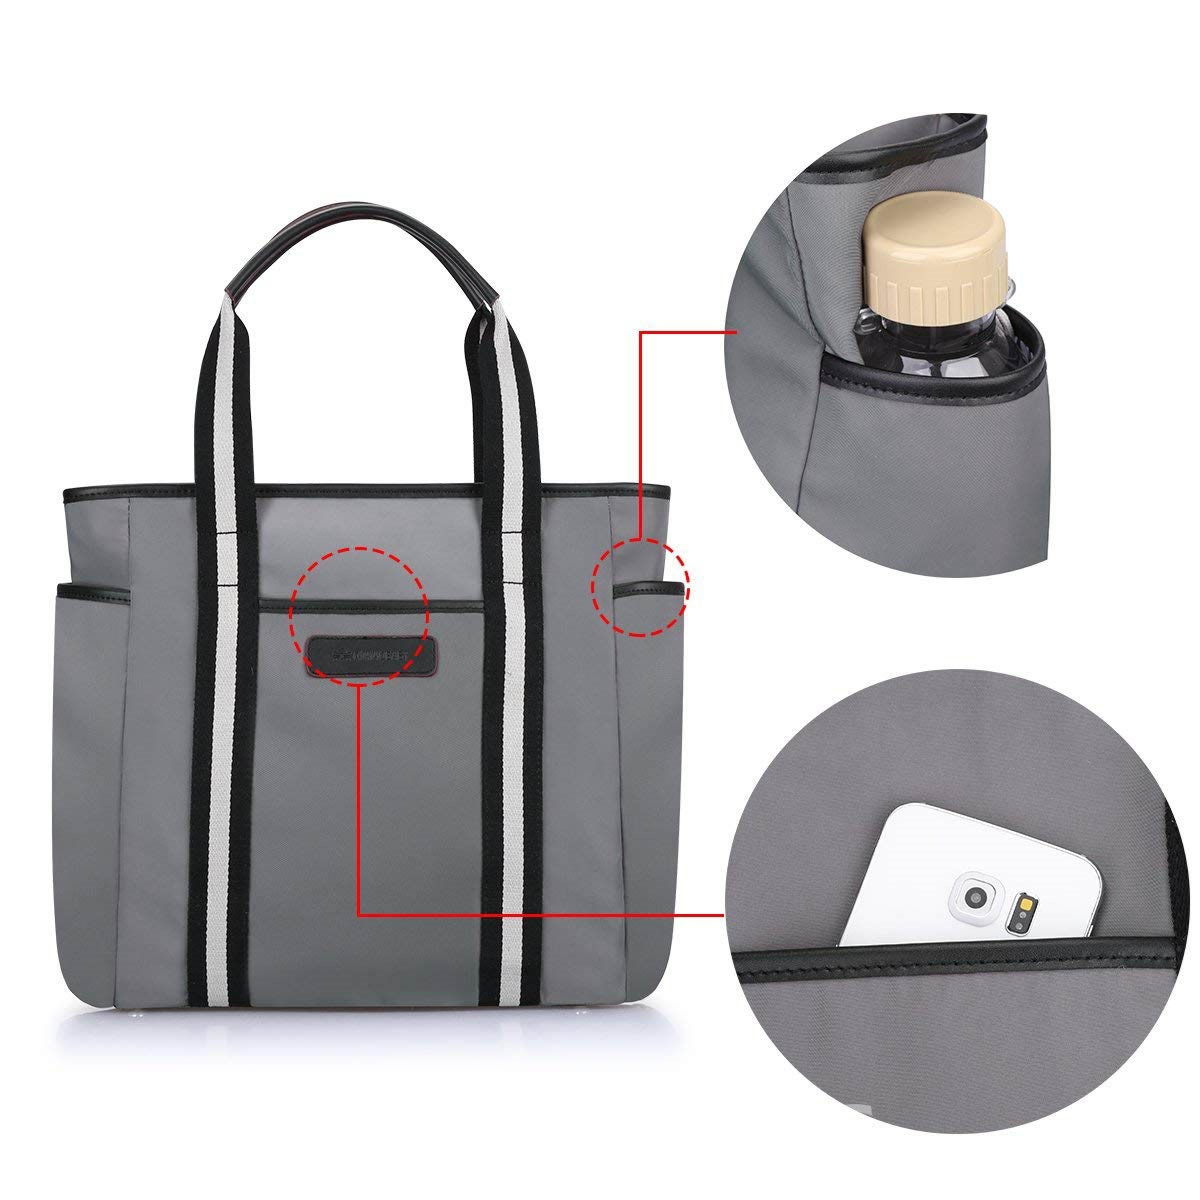 Ericdress Canvas Wear Resisting Mother's Bag